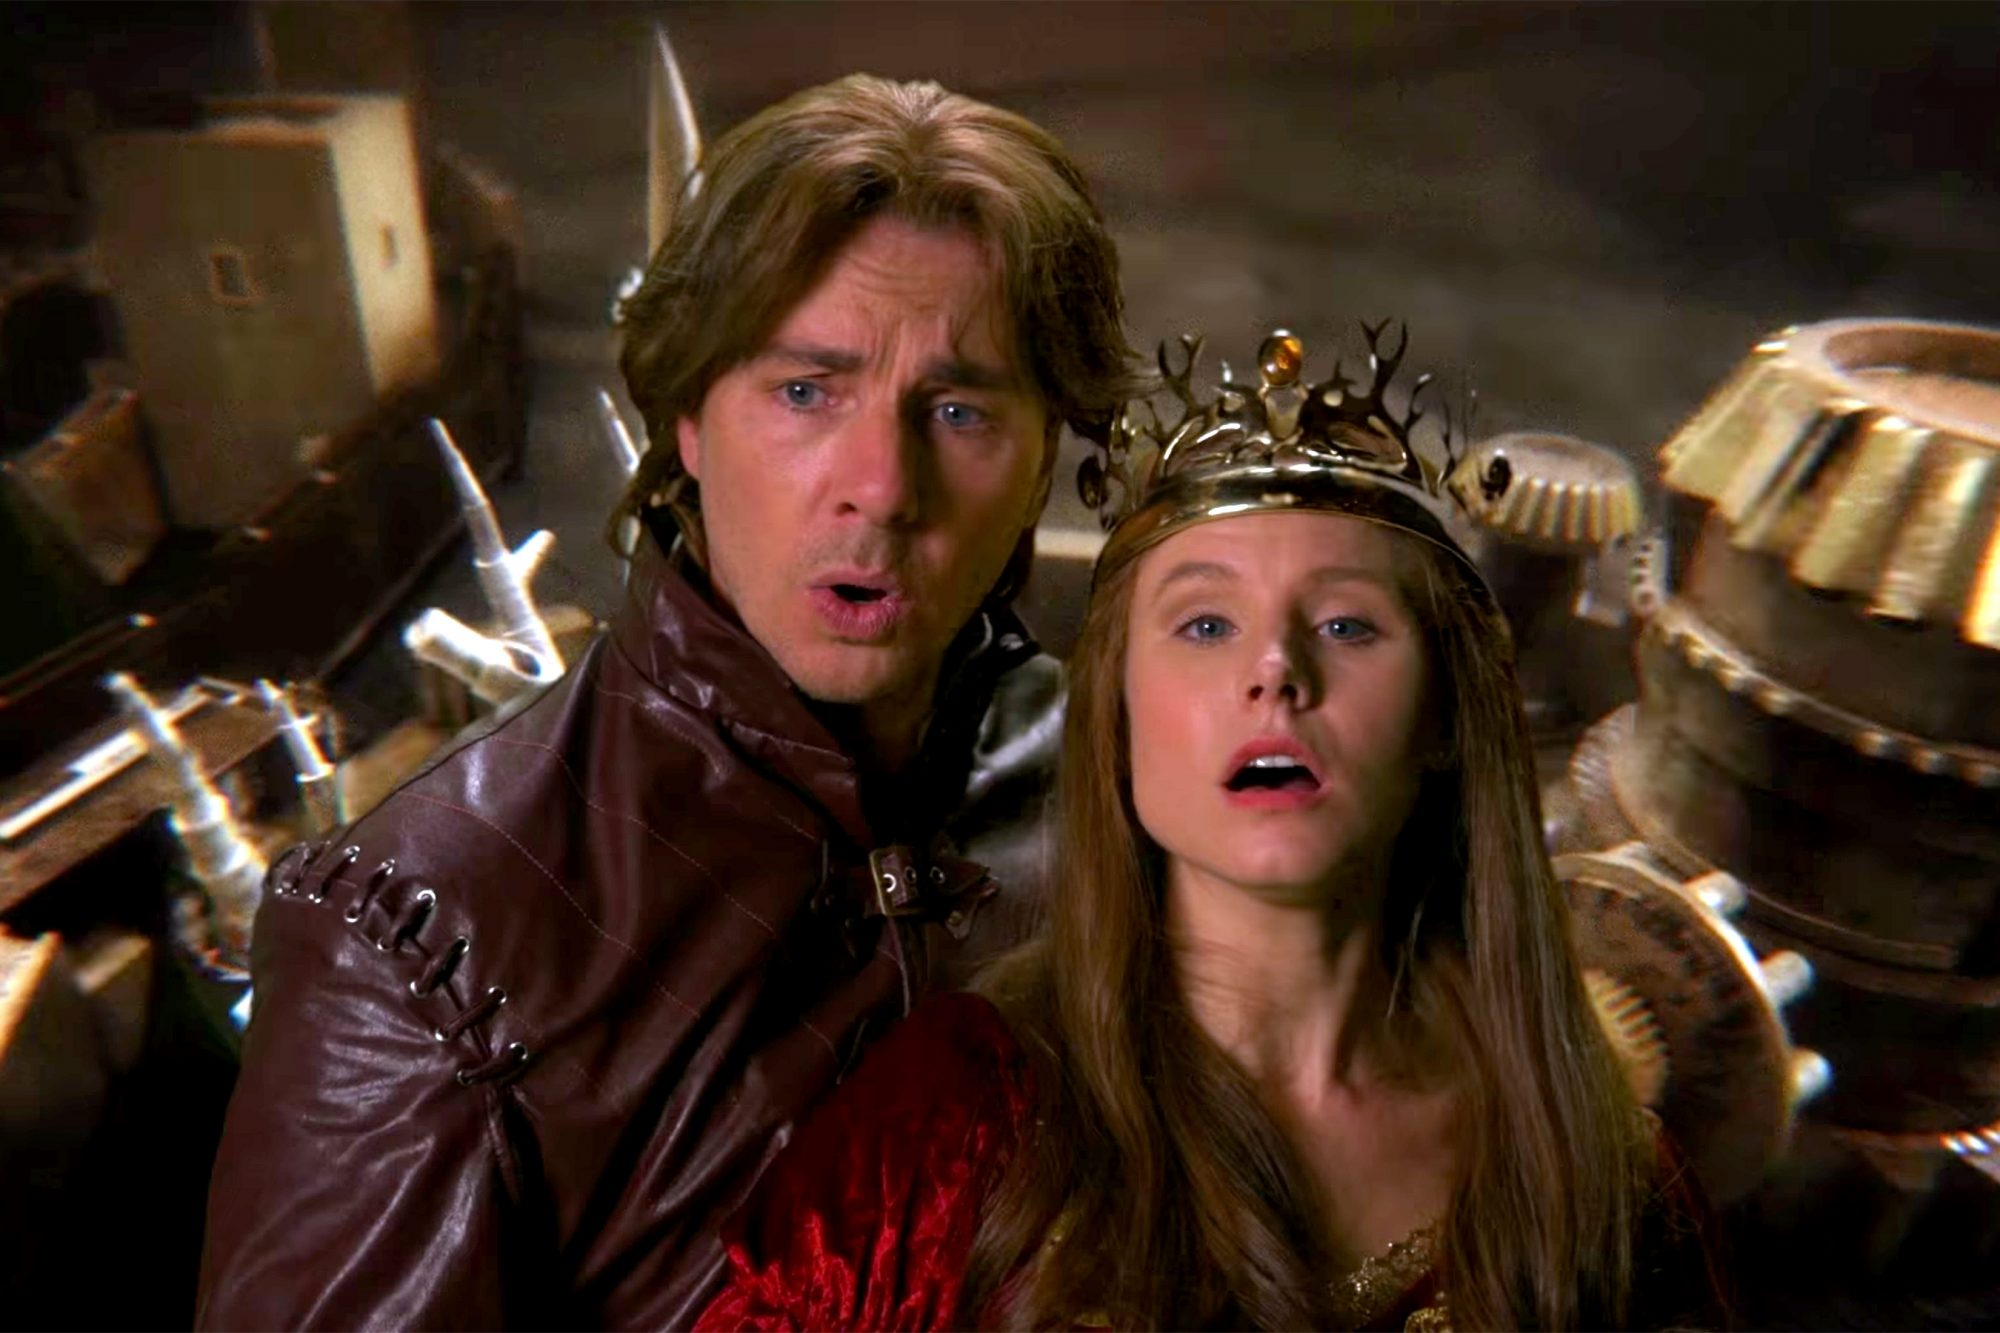 Kristen Bell and Dax Shephard's obsession with GOT